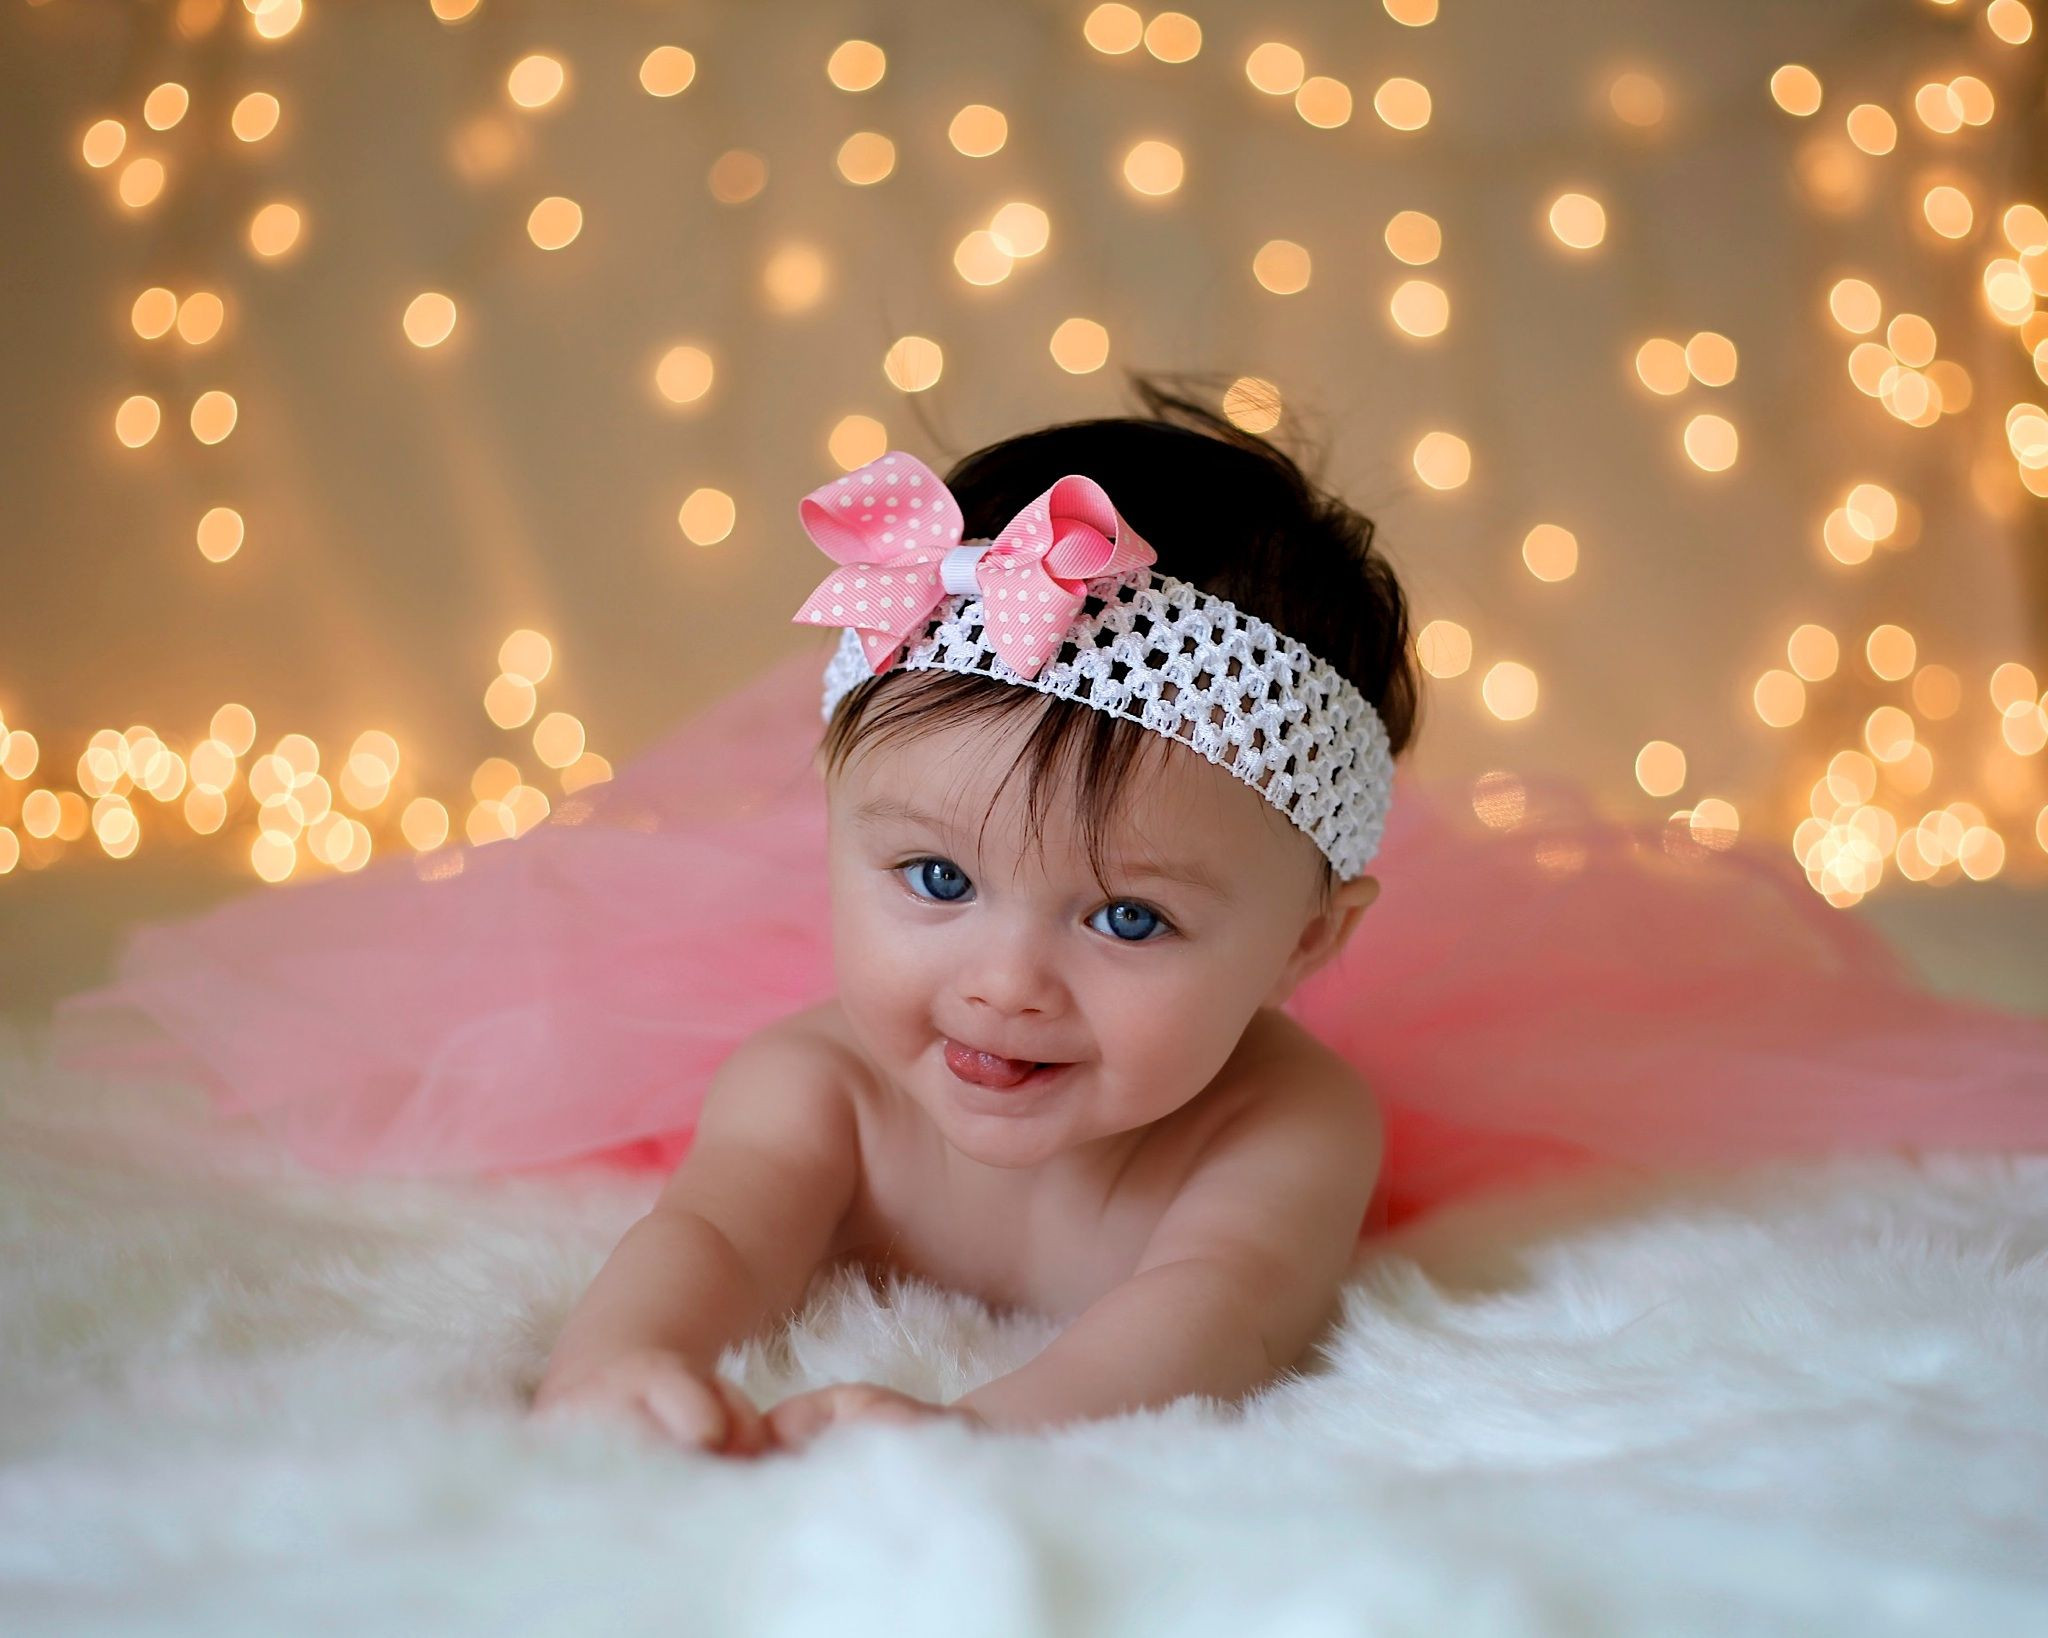 Christmas Gift Ideas For 6 Month Baby Girl  Child portrait idea Hayden s six month photos Using